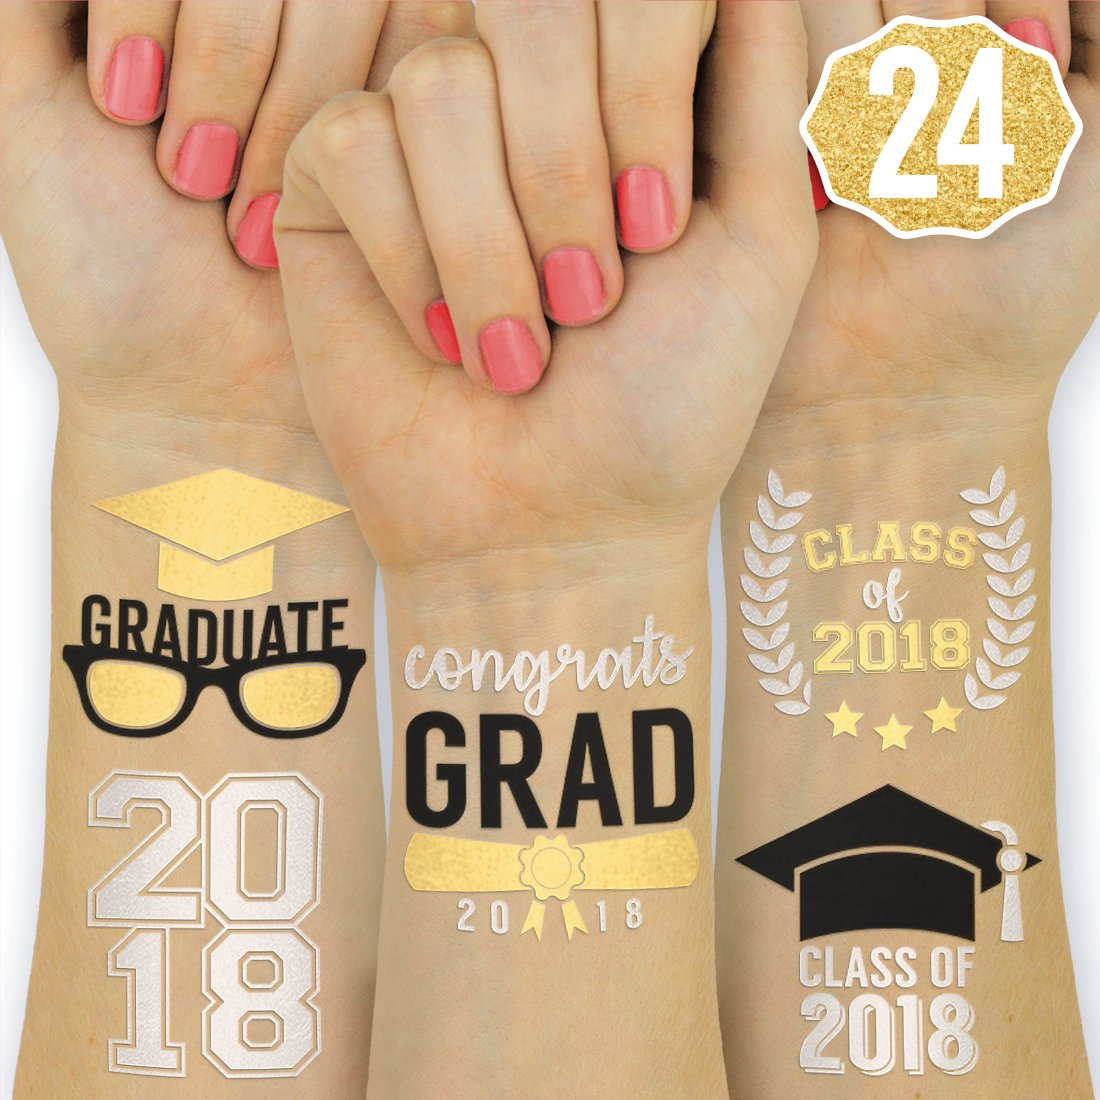 Amazon.com: Graduation Party Supplies 2018 - Class of 2018 Flash ...